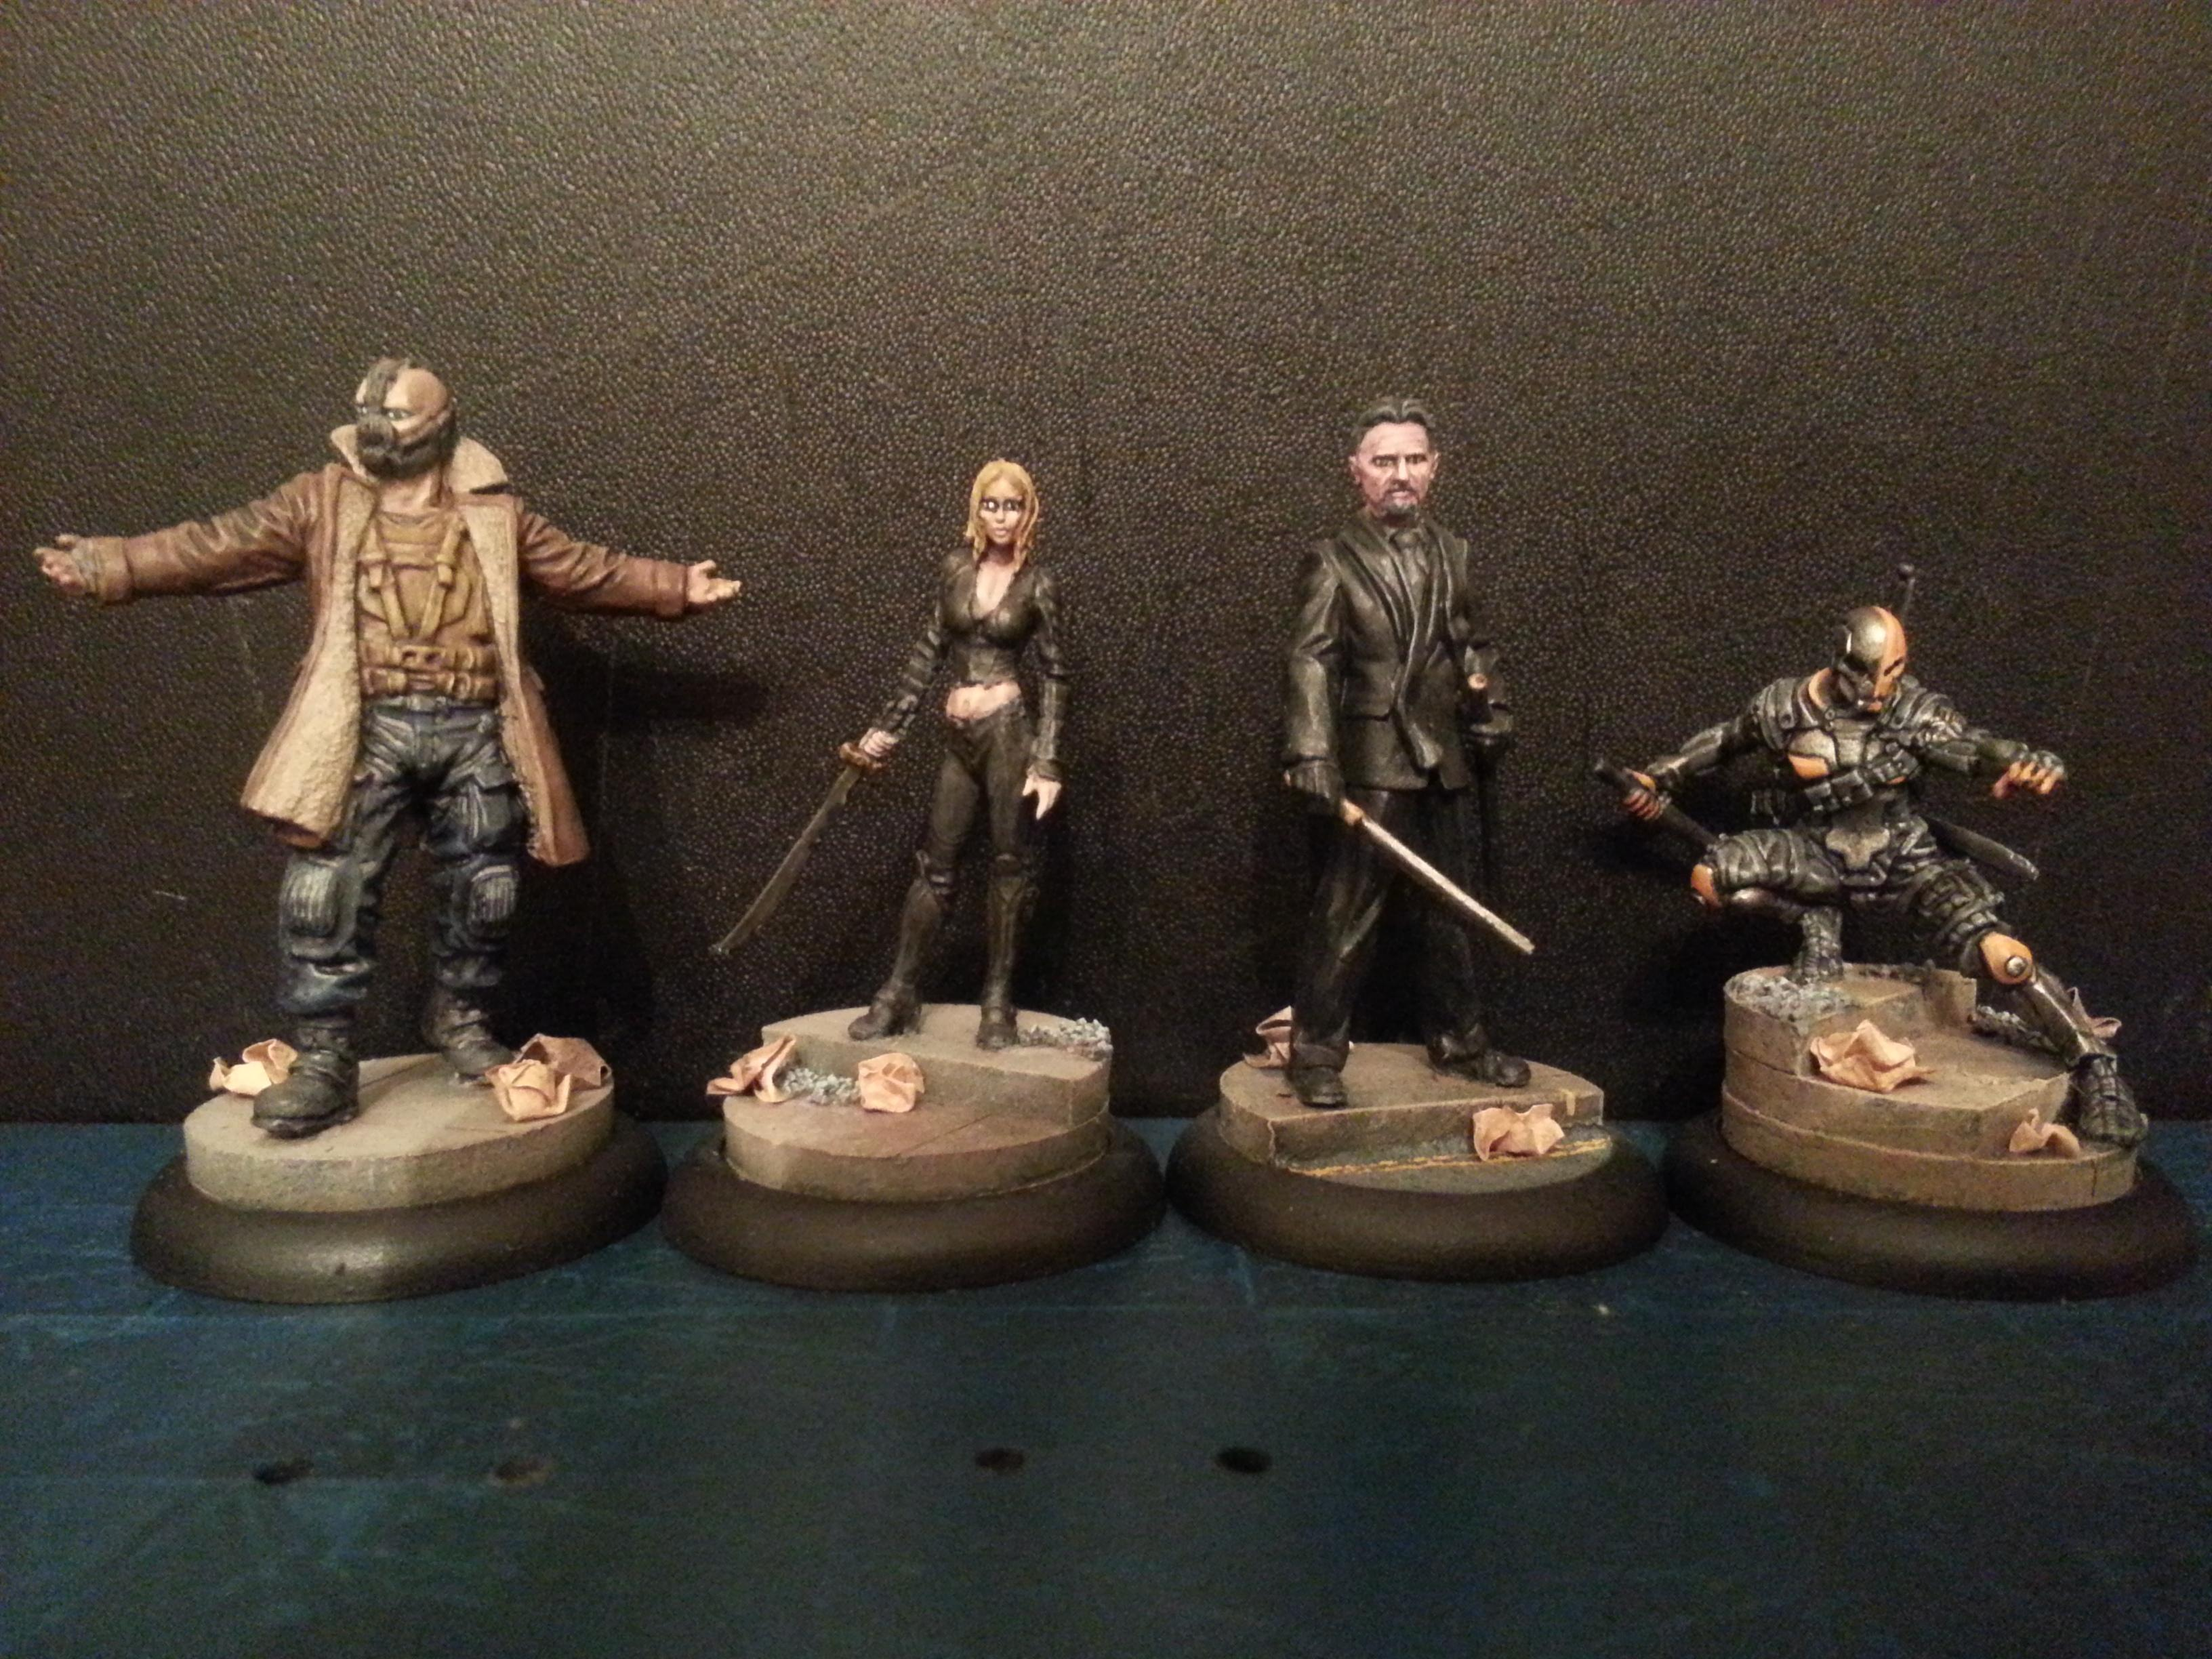 Bane, Batman, Comic, Dark, Dc, Knights, League, Miniatures, Models, Nolan, Penguin, Ras Al Ghul, Shadows